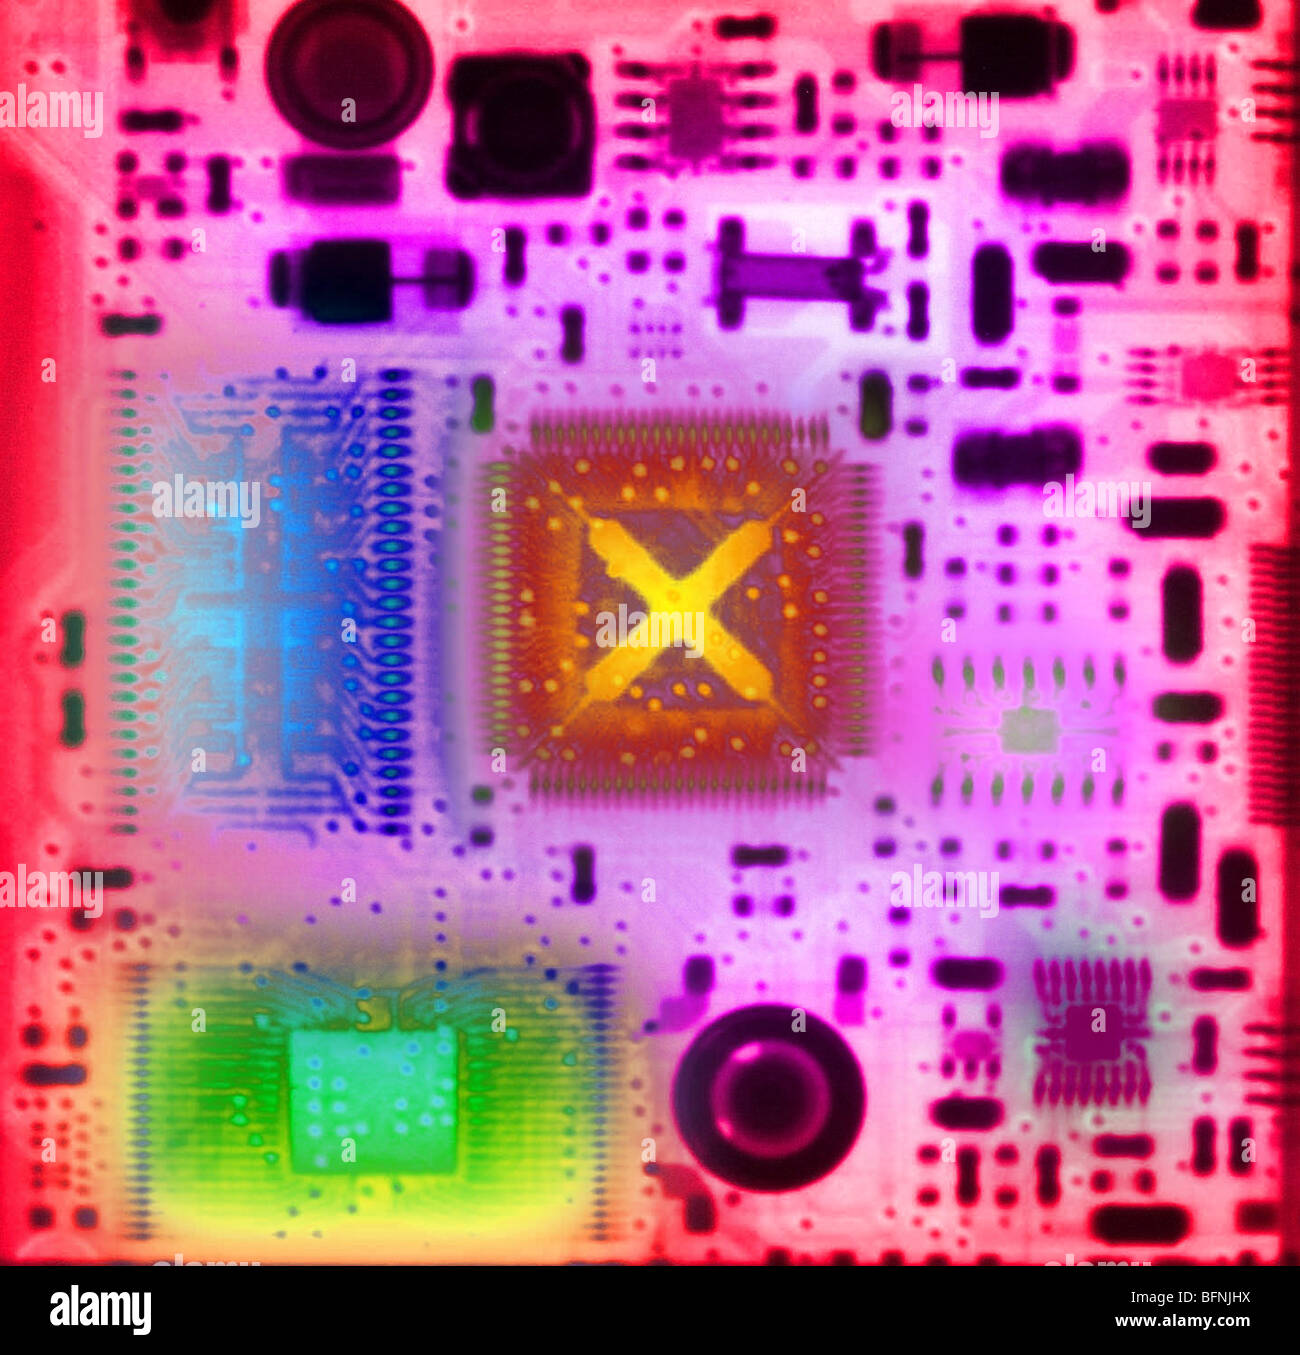 color enhanced computer chip - Stock Image